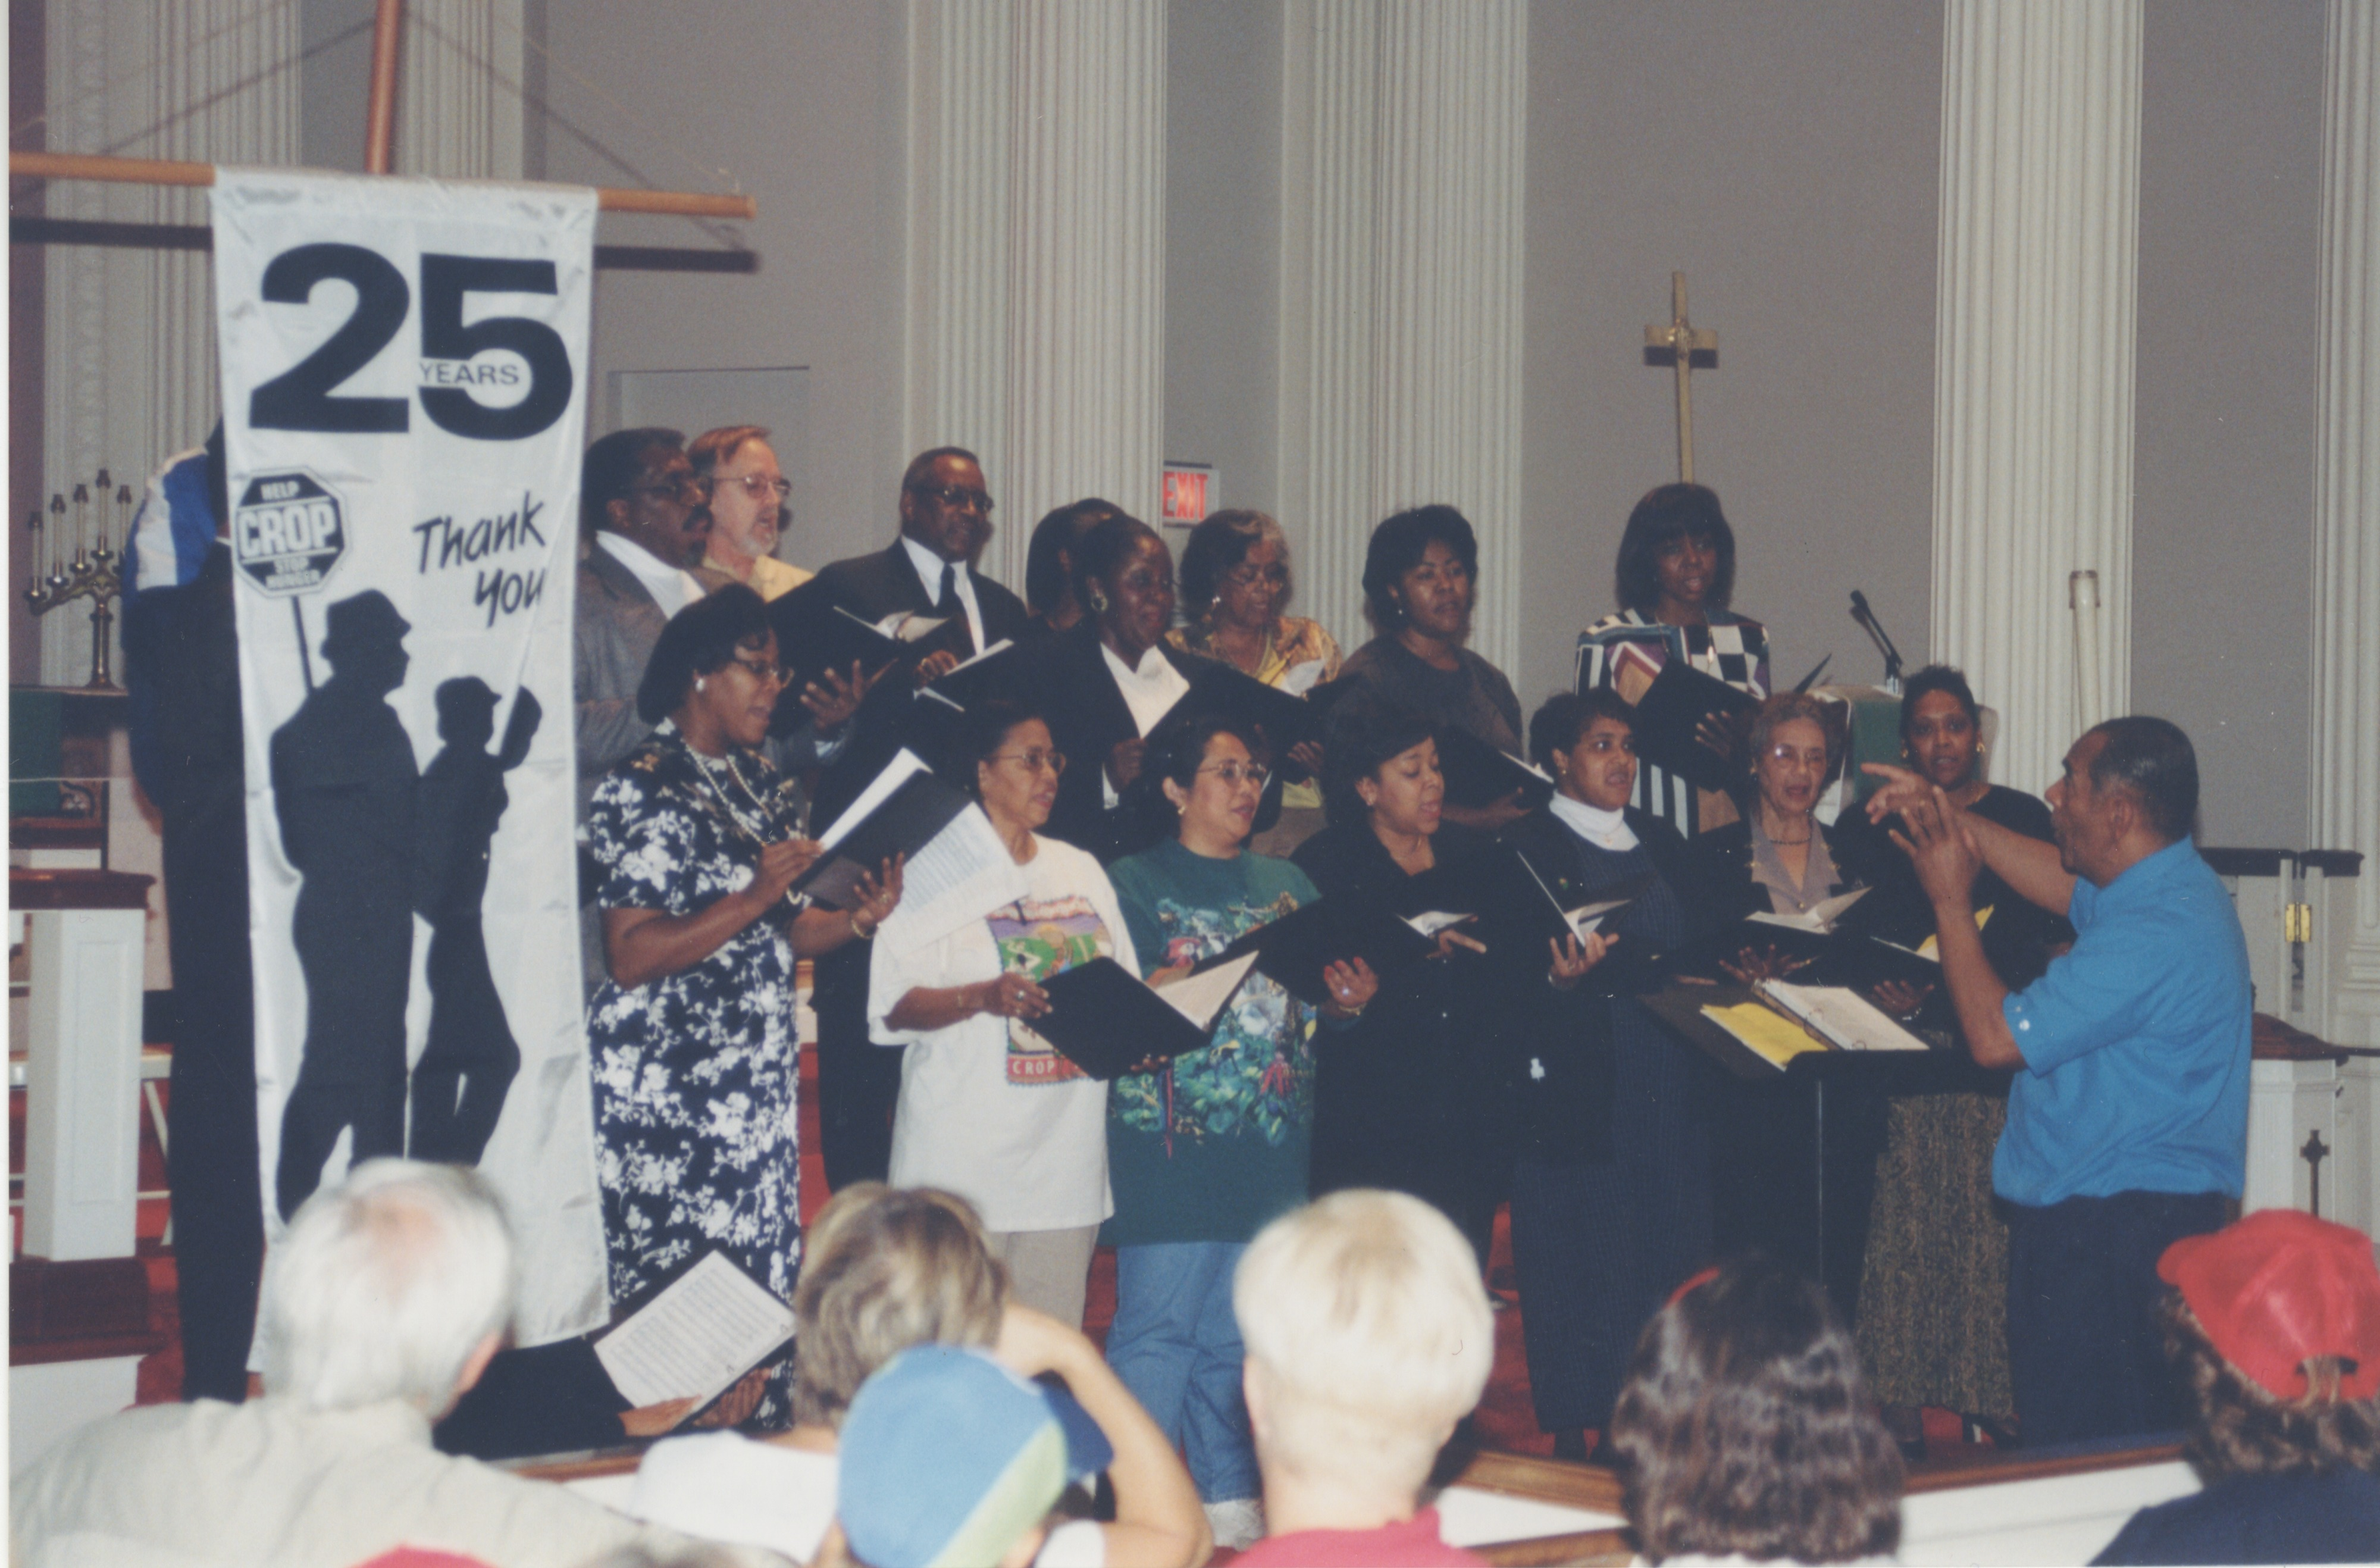 Interfaith Council for Peace and Justice: Dr. Willis Patterson and Our Own Thing Chorale, 1999 image